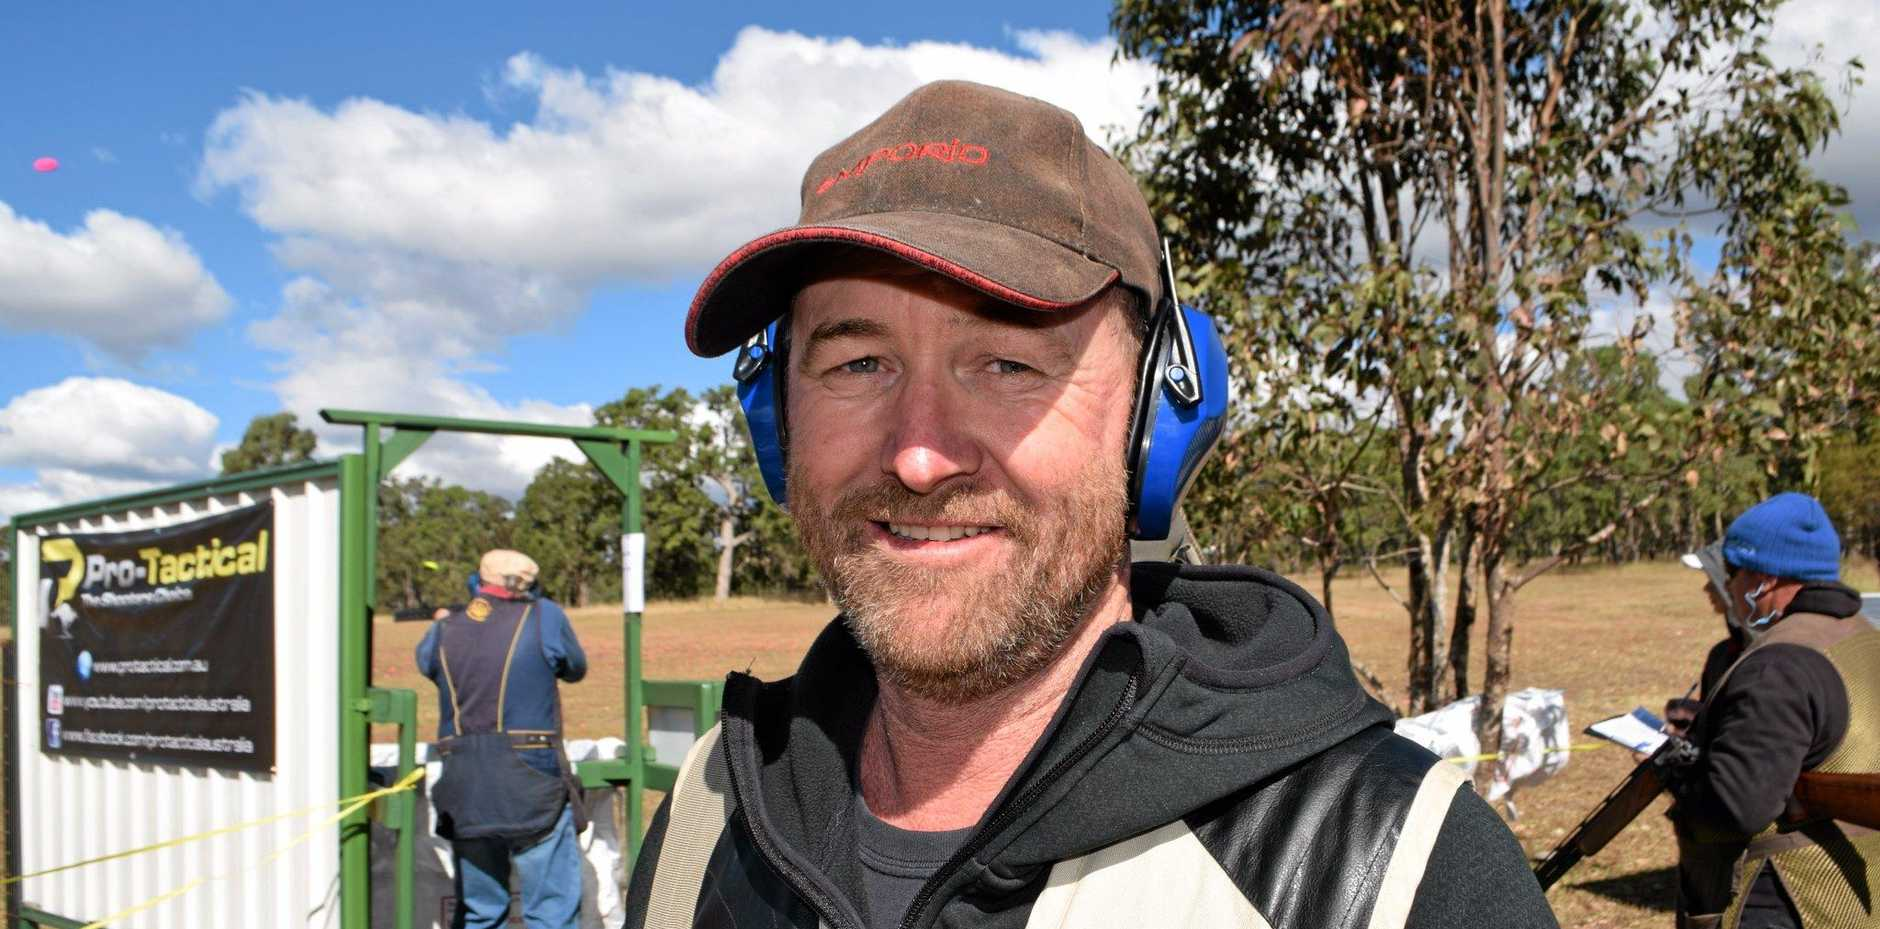 Graeme Frankling at the Cherrabah SSAA field simulation clay target competition.